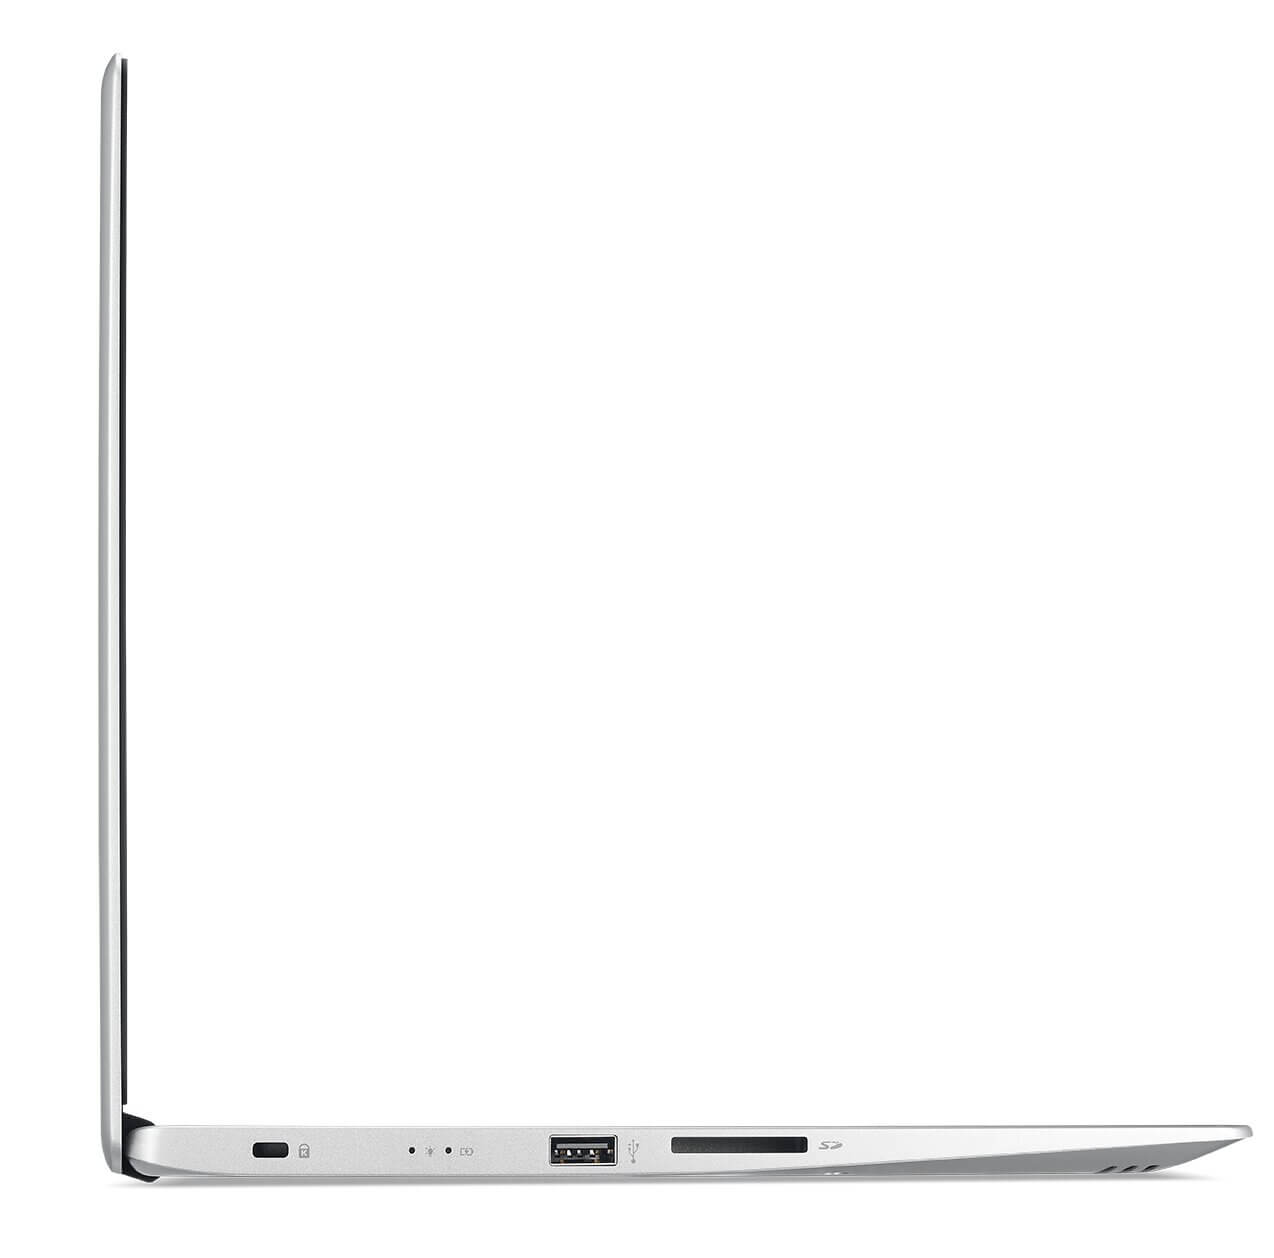 Acer Swift 1 and Swift 3